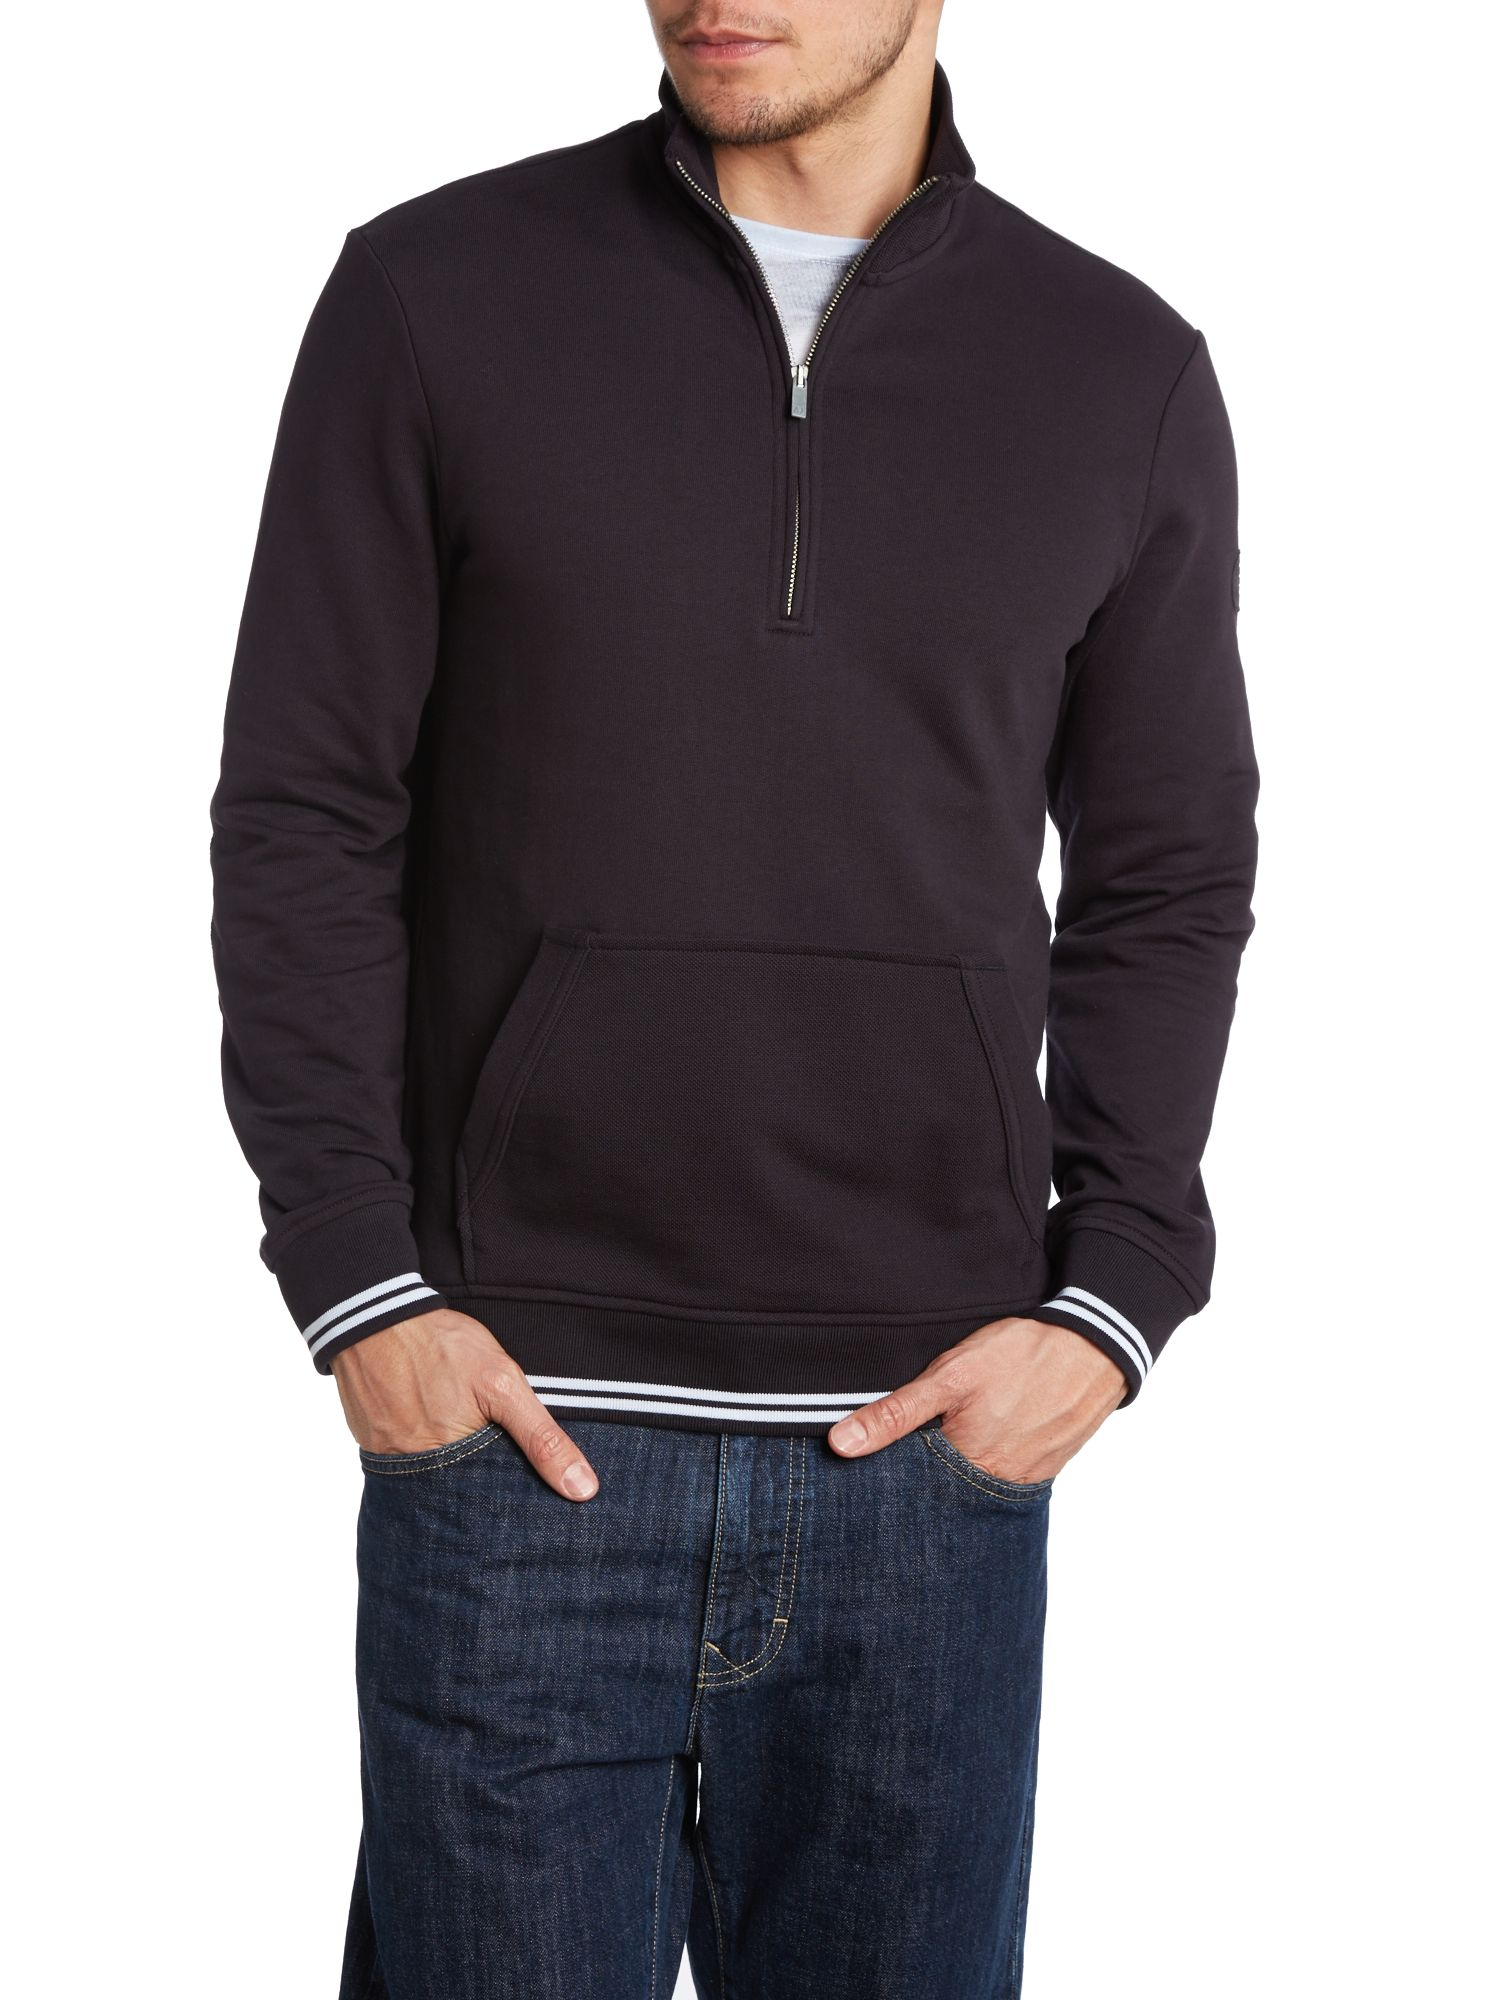 3/4 zip sweatshirt